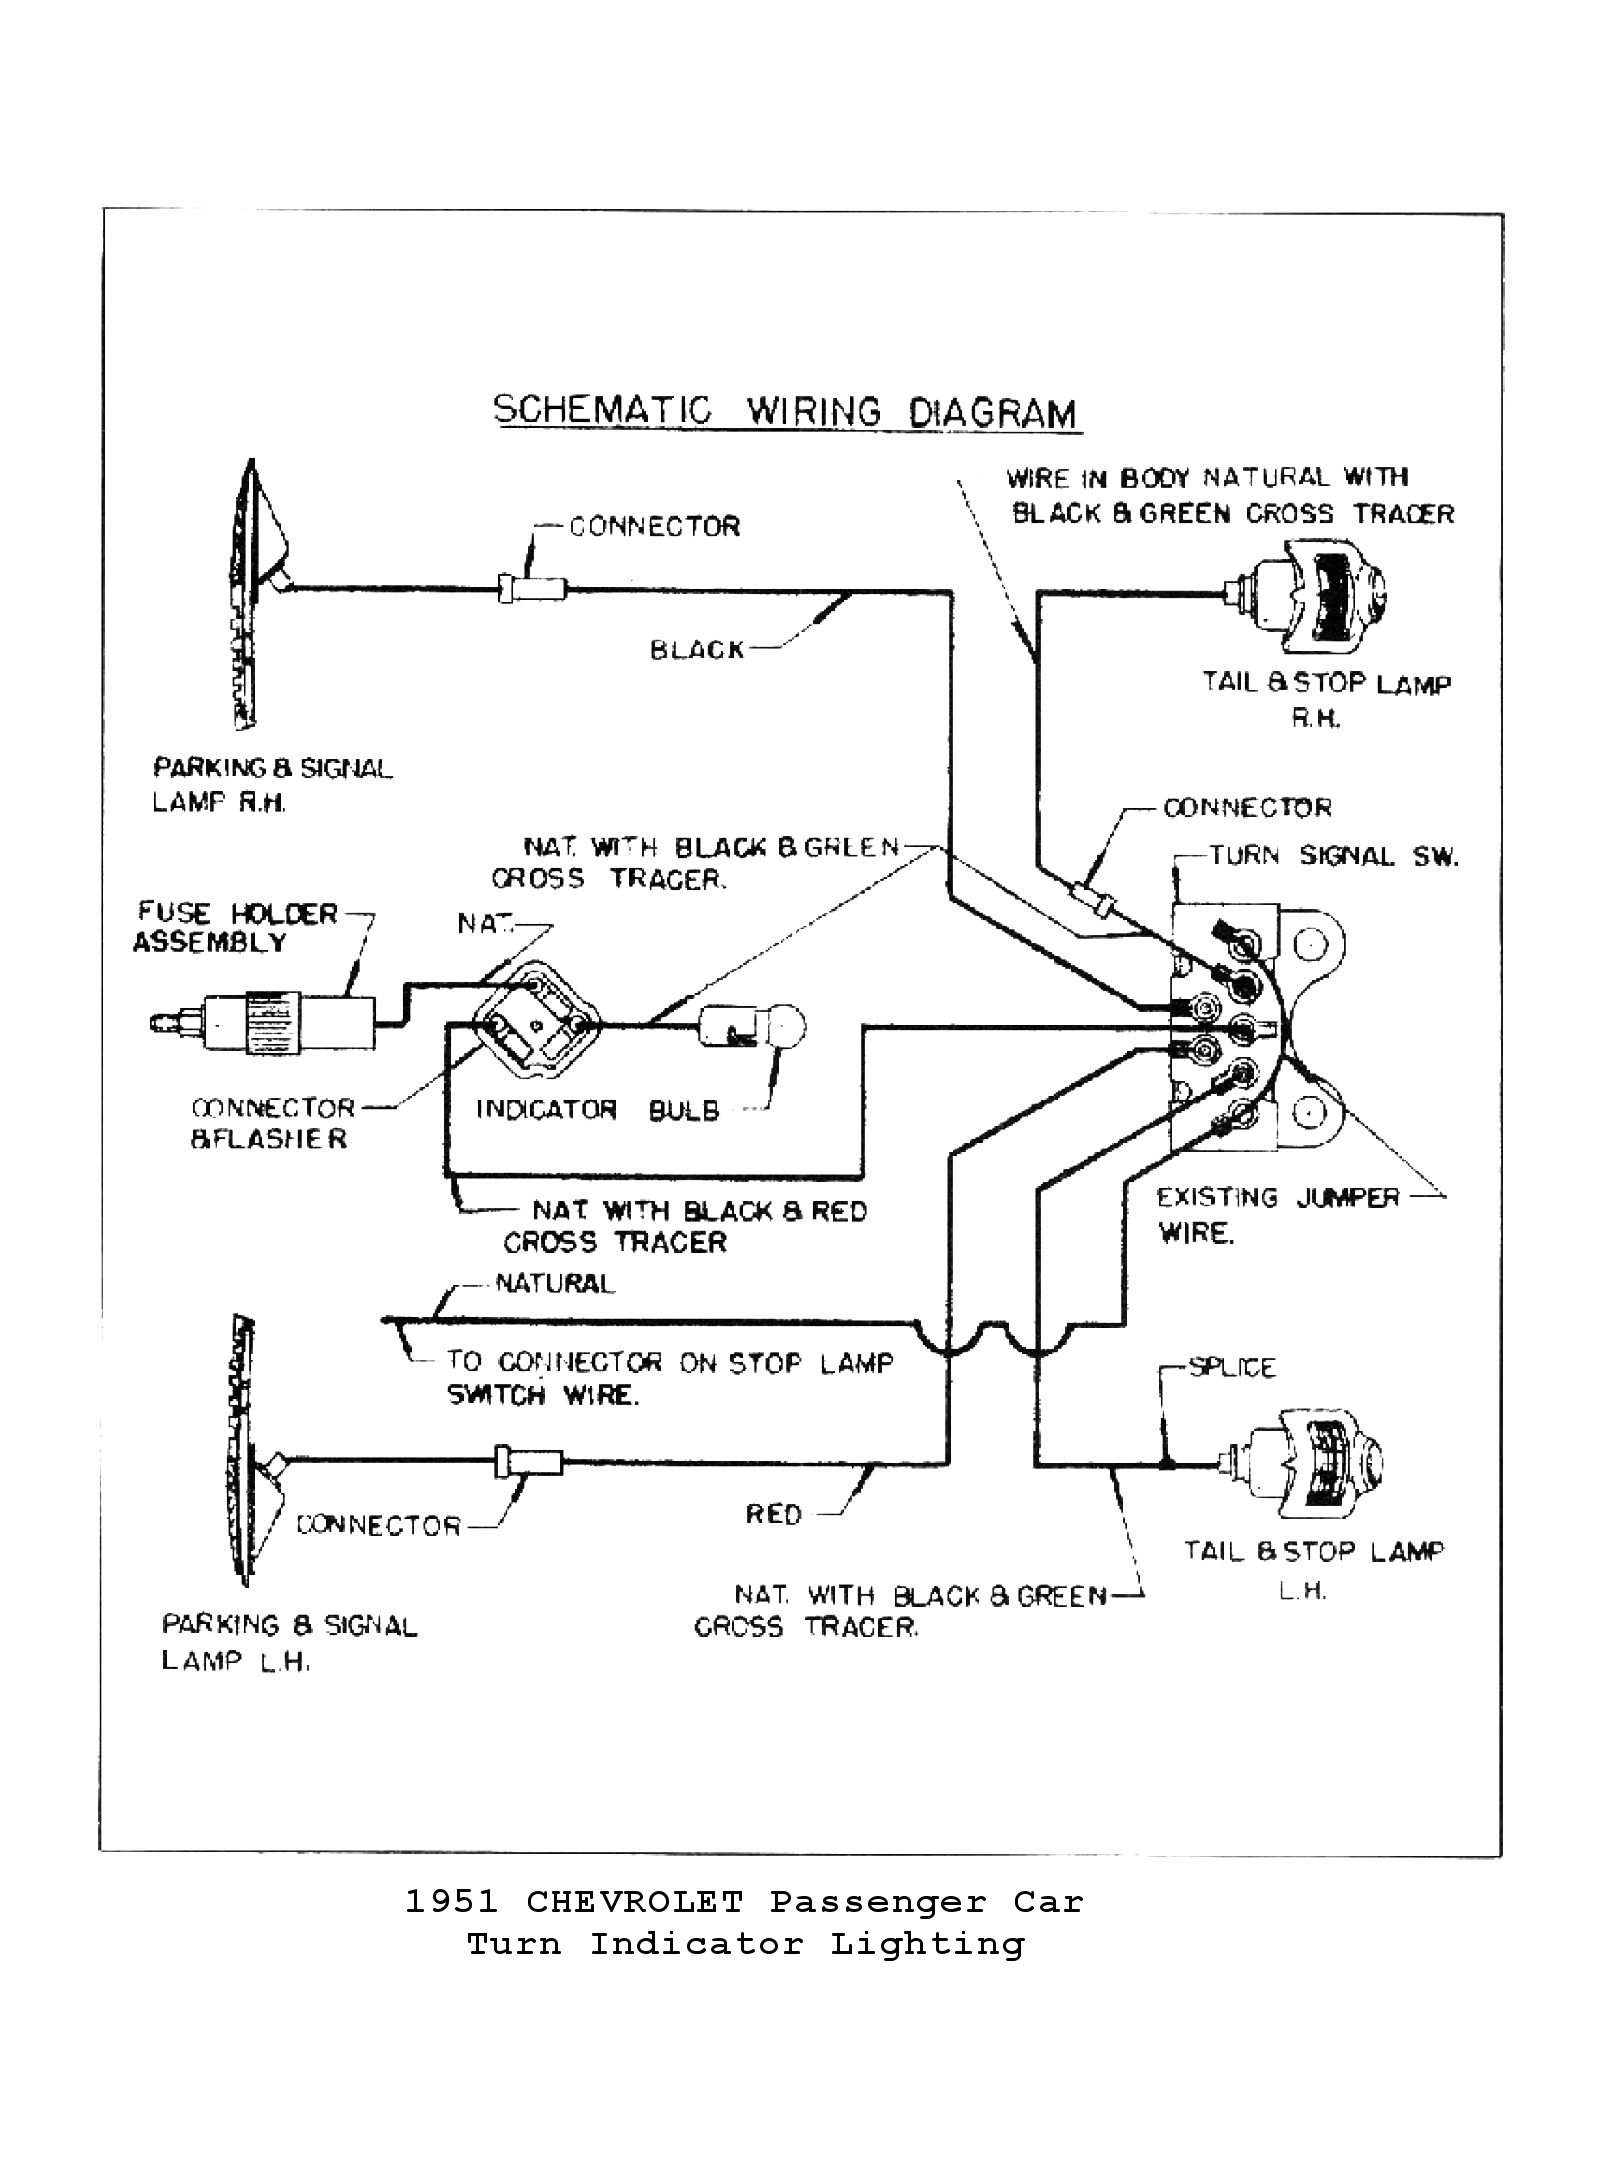 1955 chevy 210 wiring diagram free picture trusted wiring diagram u2022 rh soulmatestyle co